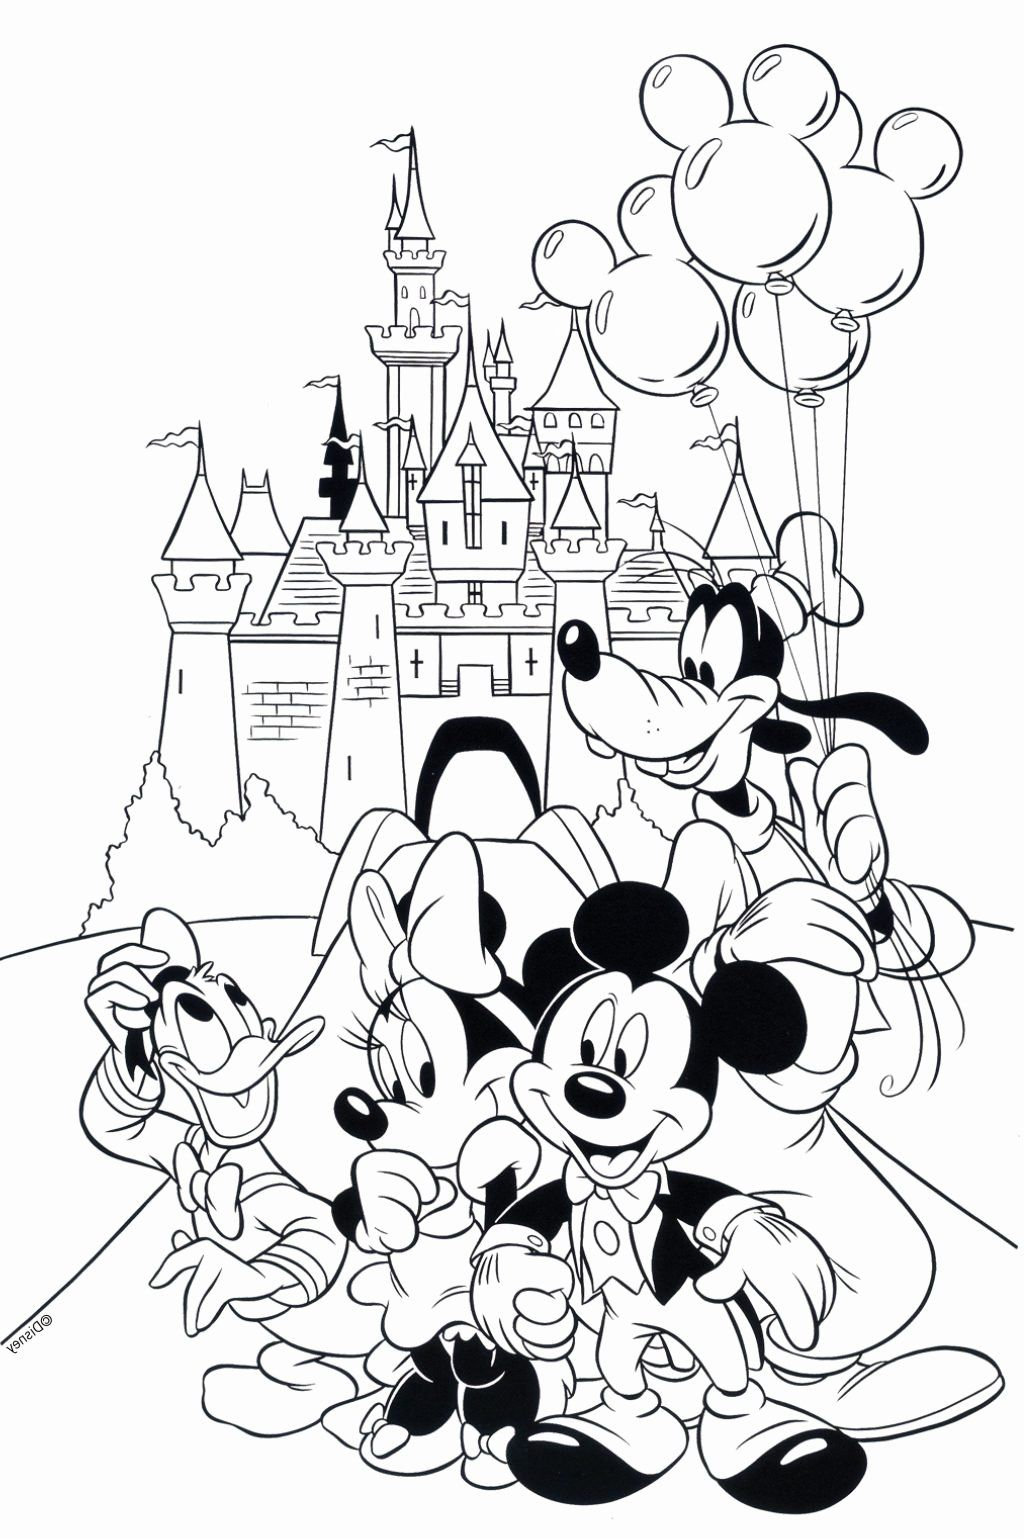 Mickey Mouse Clubhouse Printable Coloring Pages Free Picture 3 550x647 Picture Mickey Mouse Coloring Pages Minnie Mouse Coloring Pages Disney Coloring Pages